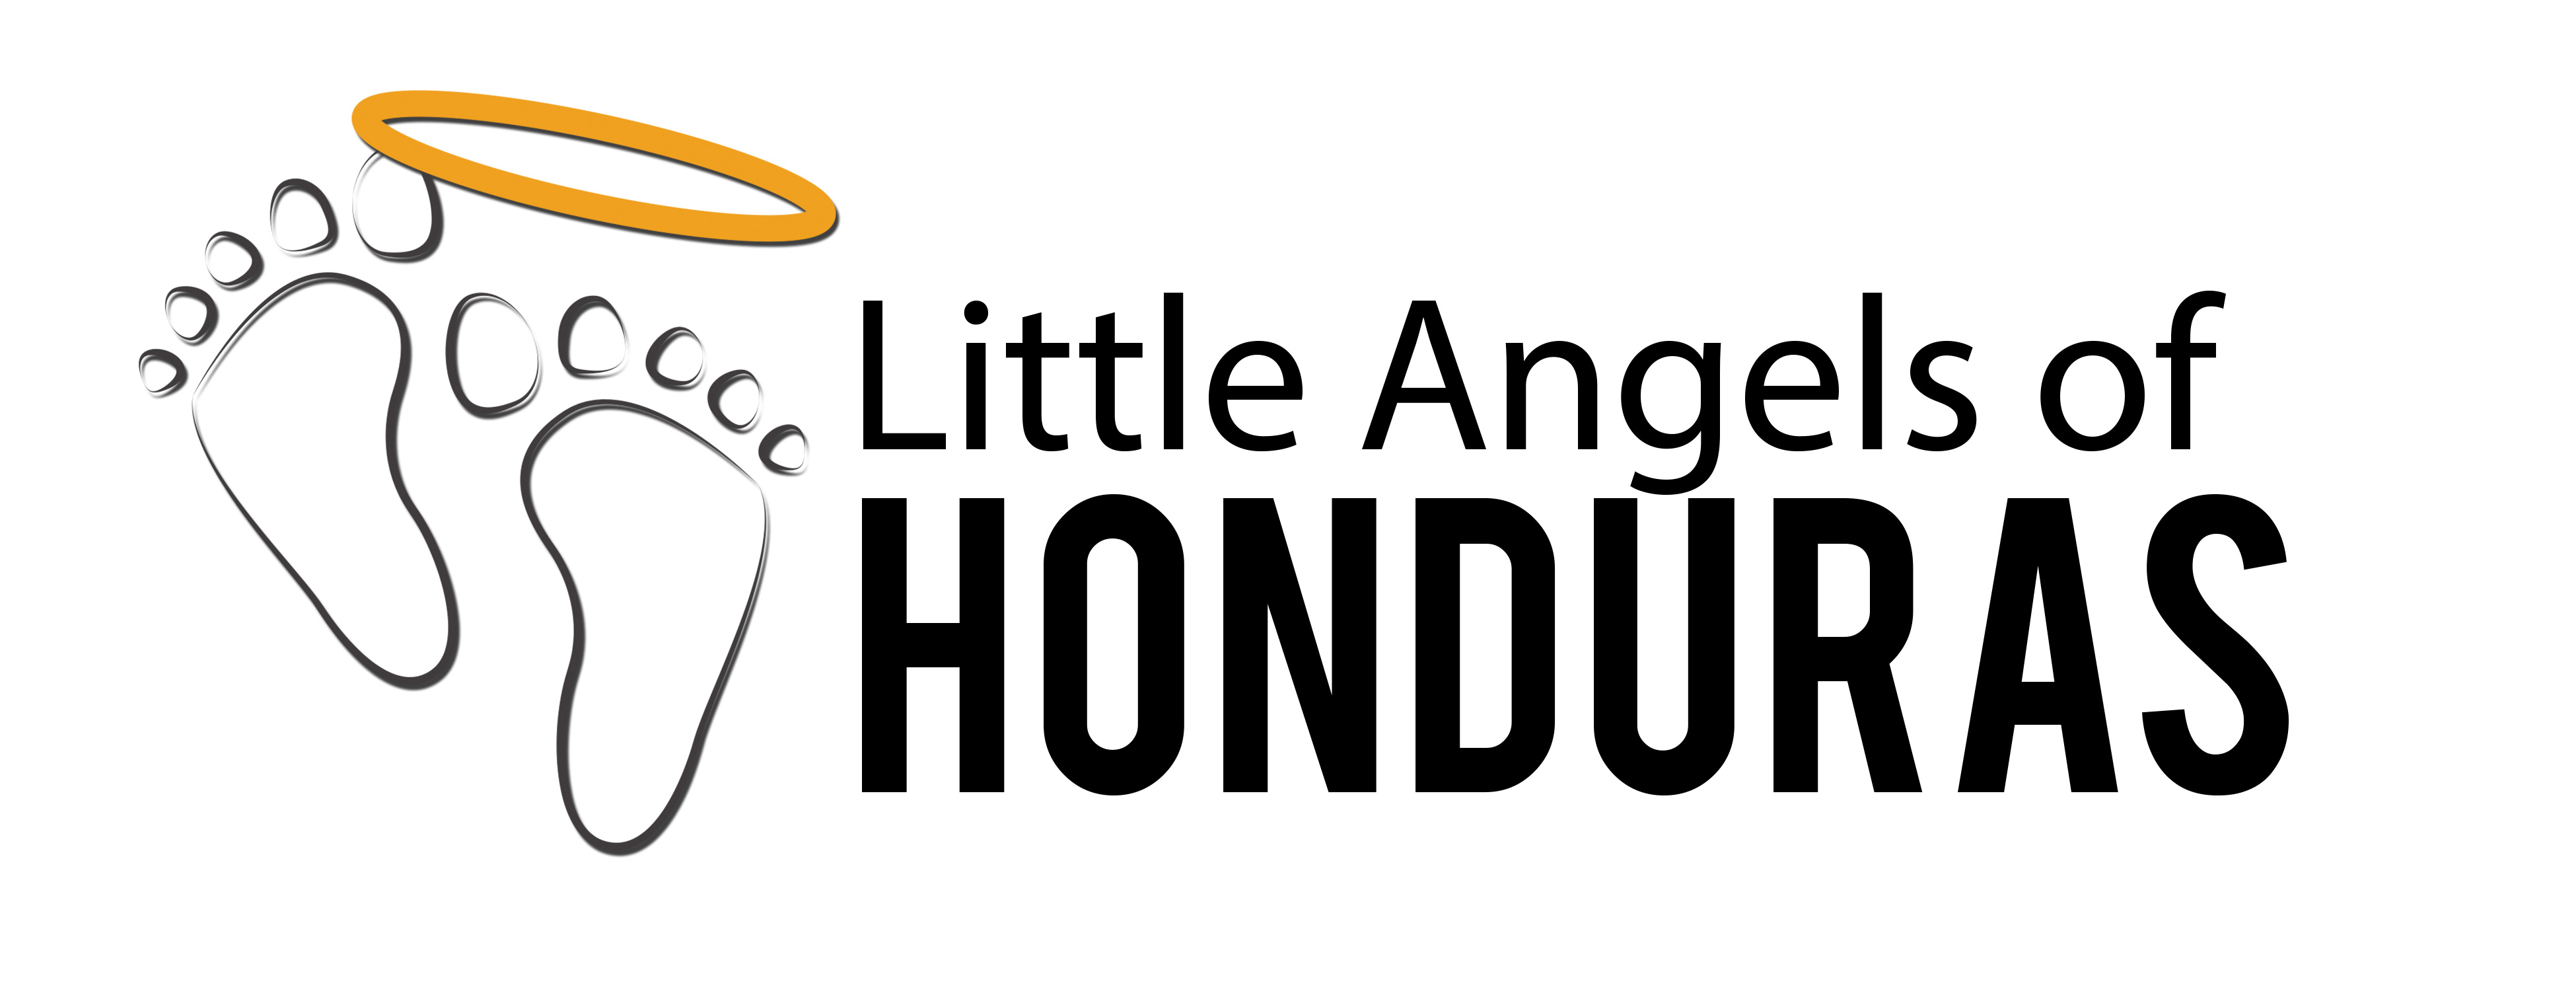 Little Angels of Honduras | Hope